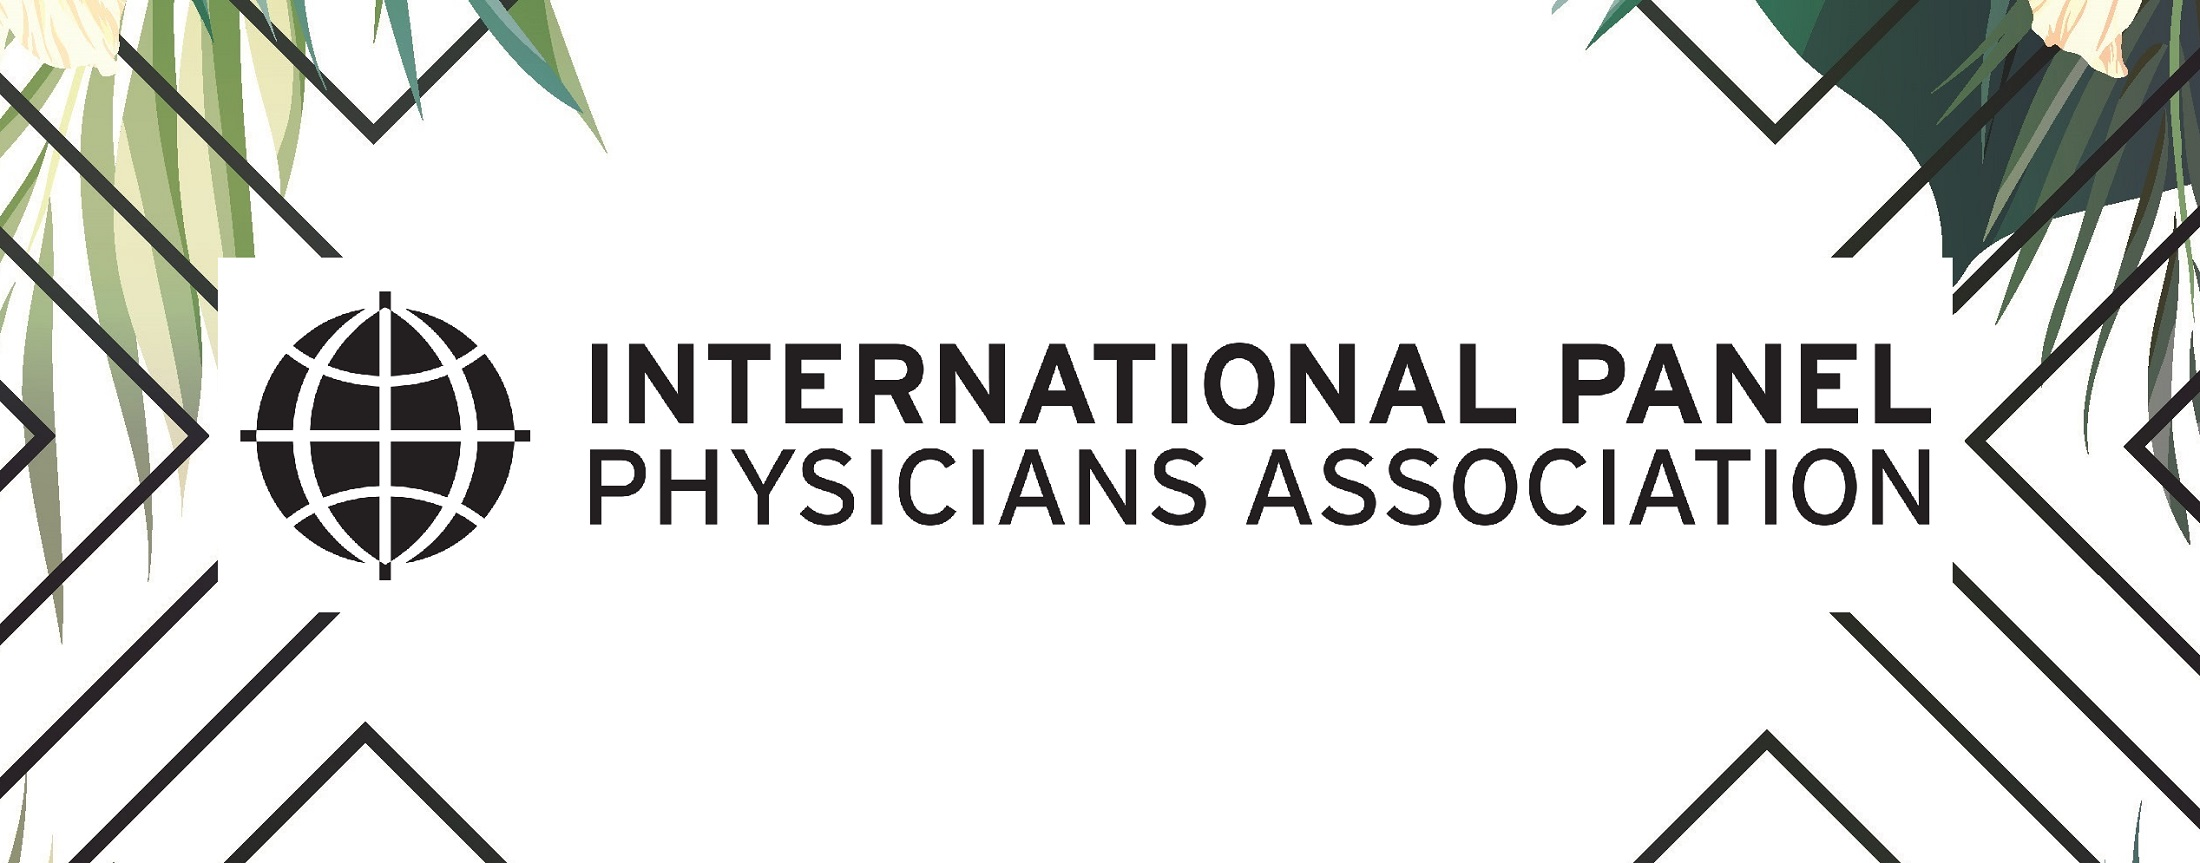 Intergovernmental Panel Physician Training Summit, March 27-31, 2017